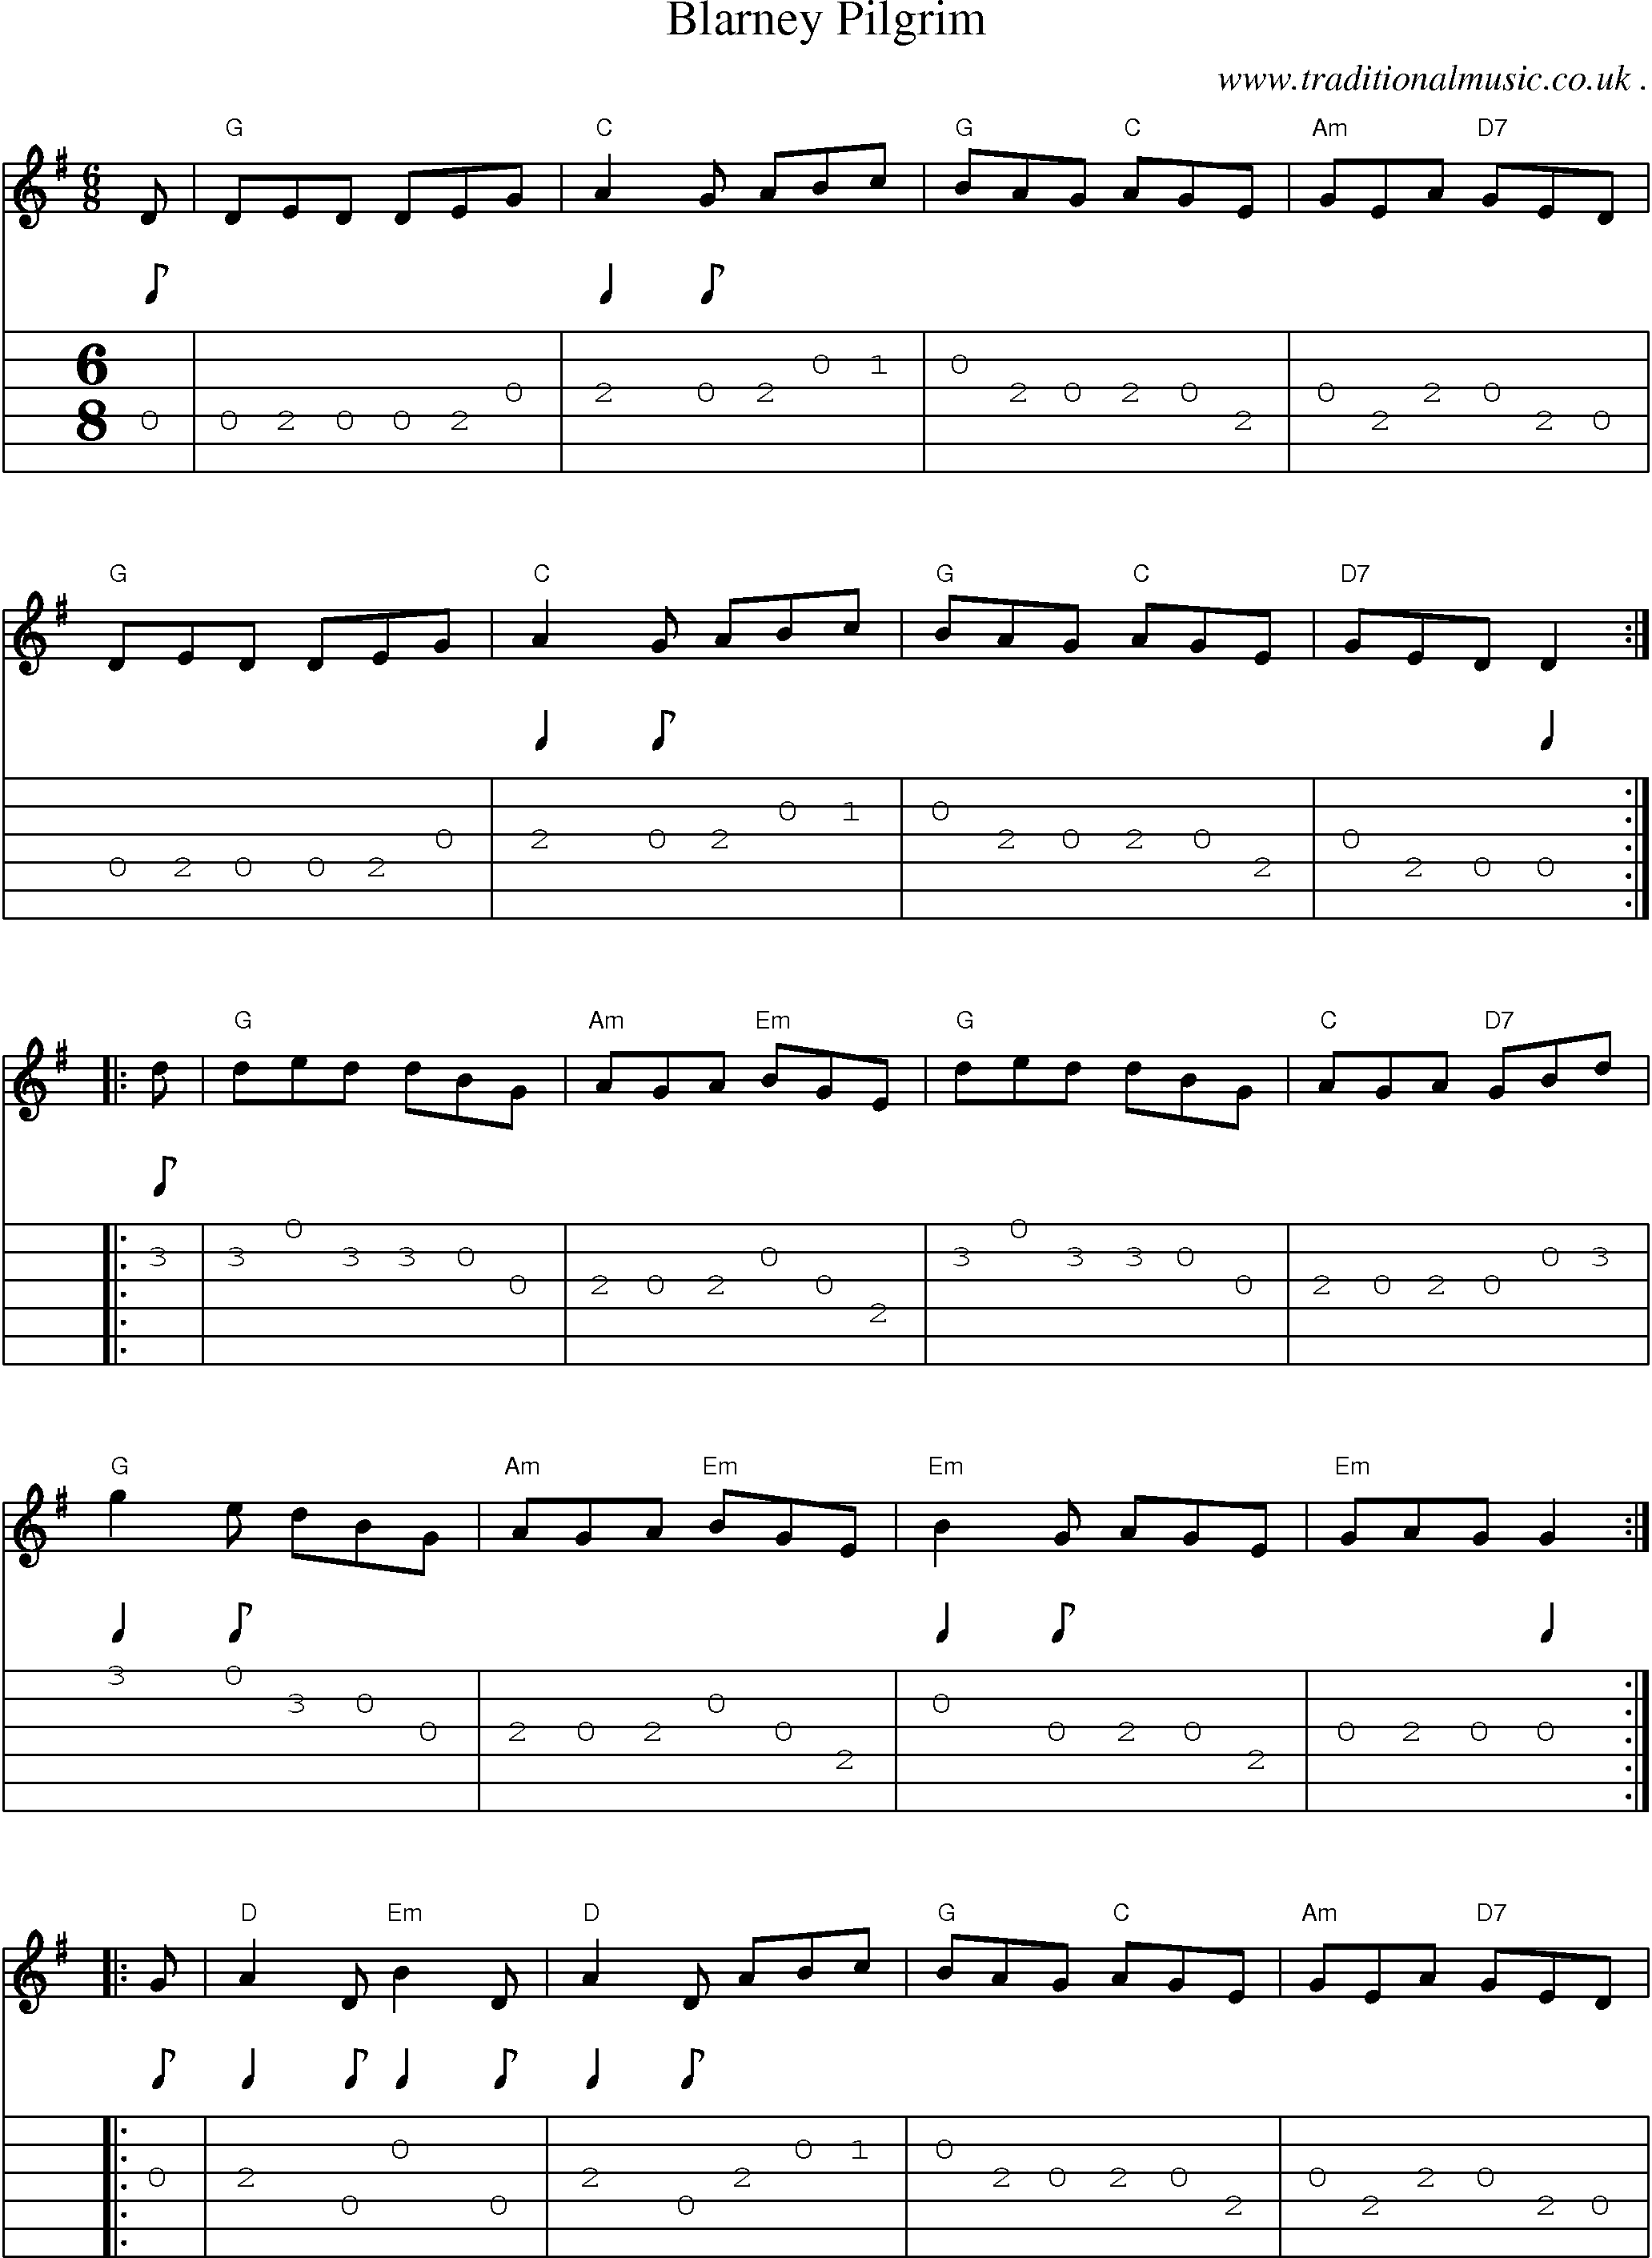 photograph relating to Printable Guitar Tab named Well-liked consultation new music, Ratings and Tabs for Guitar - Blarney